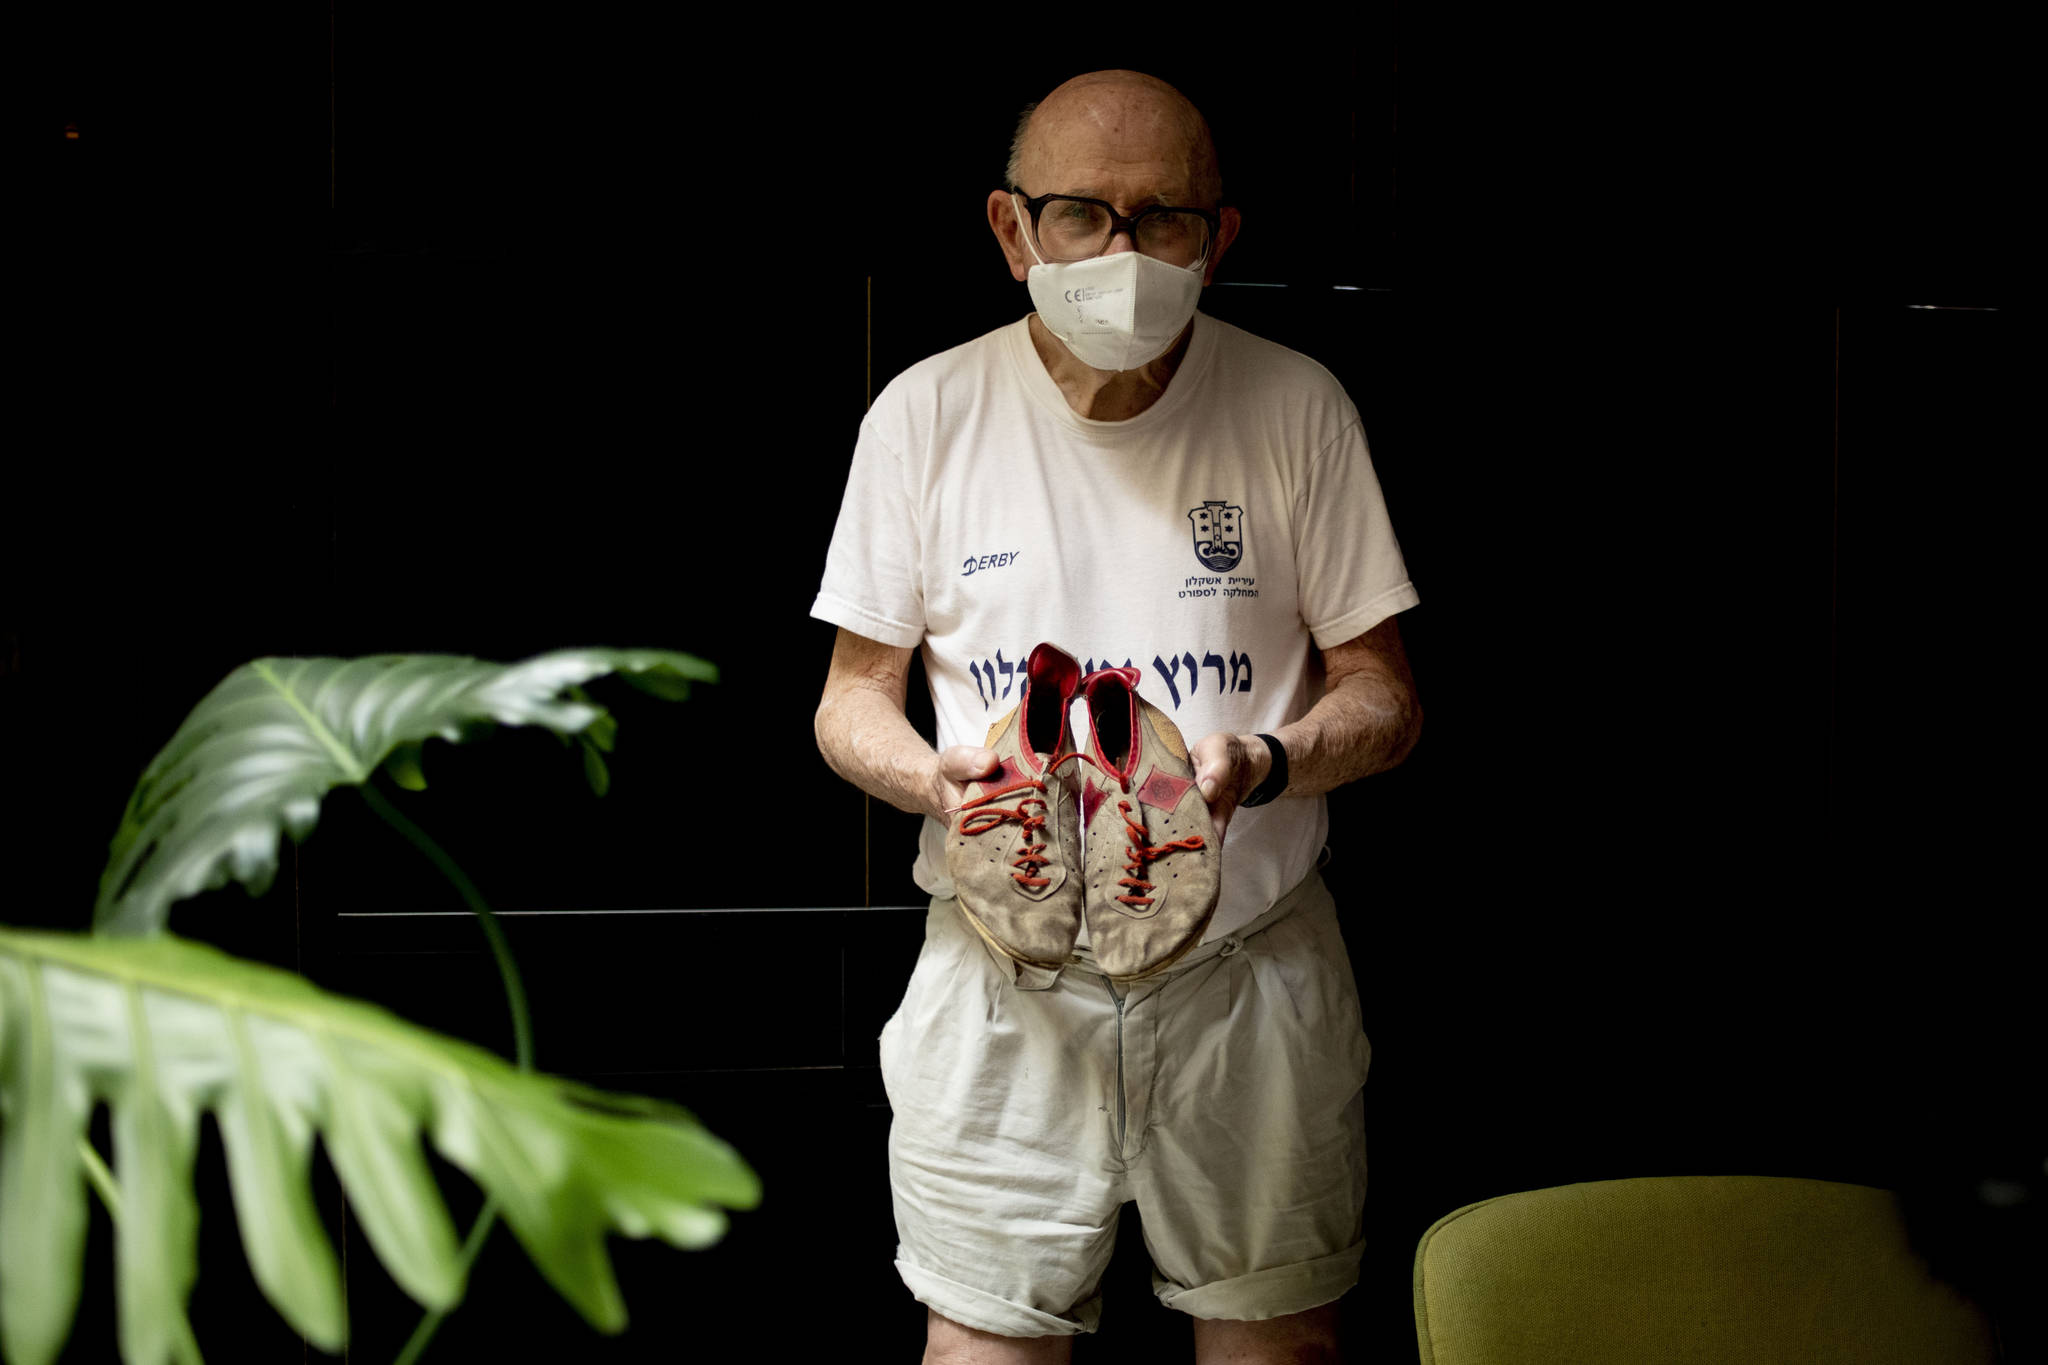 "Israeli Olympic racewalker Shaul Ladany holds his 1972's Olympic race shoes for a portrait in Omer, Israel, Sunday, July 12, 2020. In an instant, the world record holder in the 50-mile walk was thrust into one of sports' greatest tragedies and a seminal moment in modern history _ the kidnapping and massacre of his fellow Israeli team members at the 1972 Munich Olympics. The killing shocked the world, gave the Palestinian cause an audience and ushered in a new era of global terrorism. Ladany, a Holocaust survivor, the lessons still linger. He says it taught him to ""never be afraid"" but become ""more careful.""(AP Photo / Ariel Schalit)"